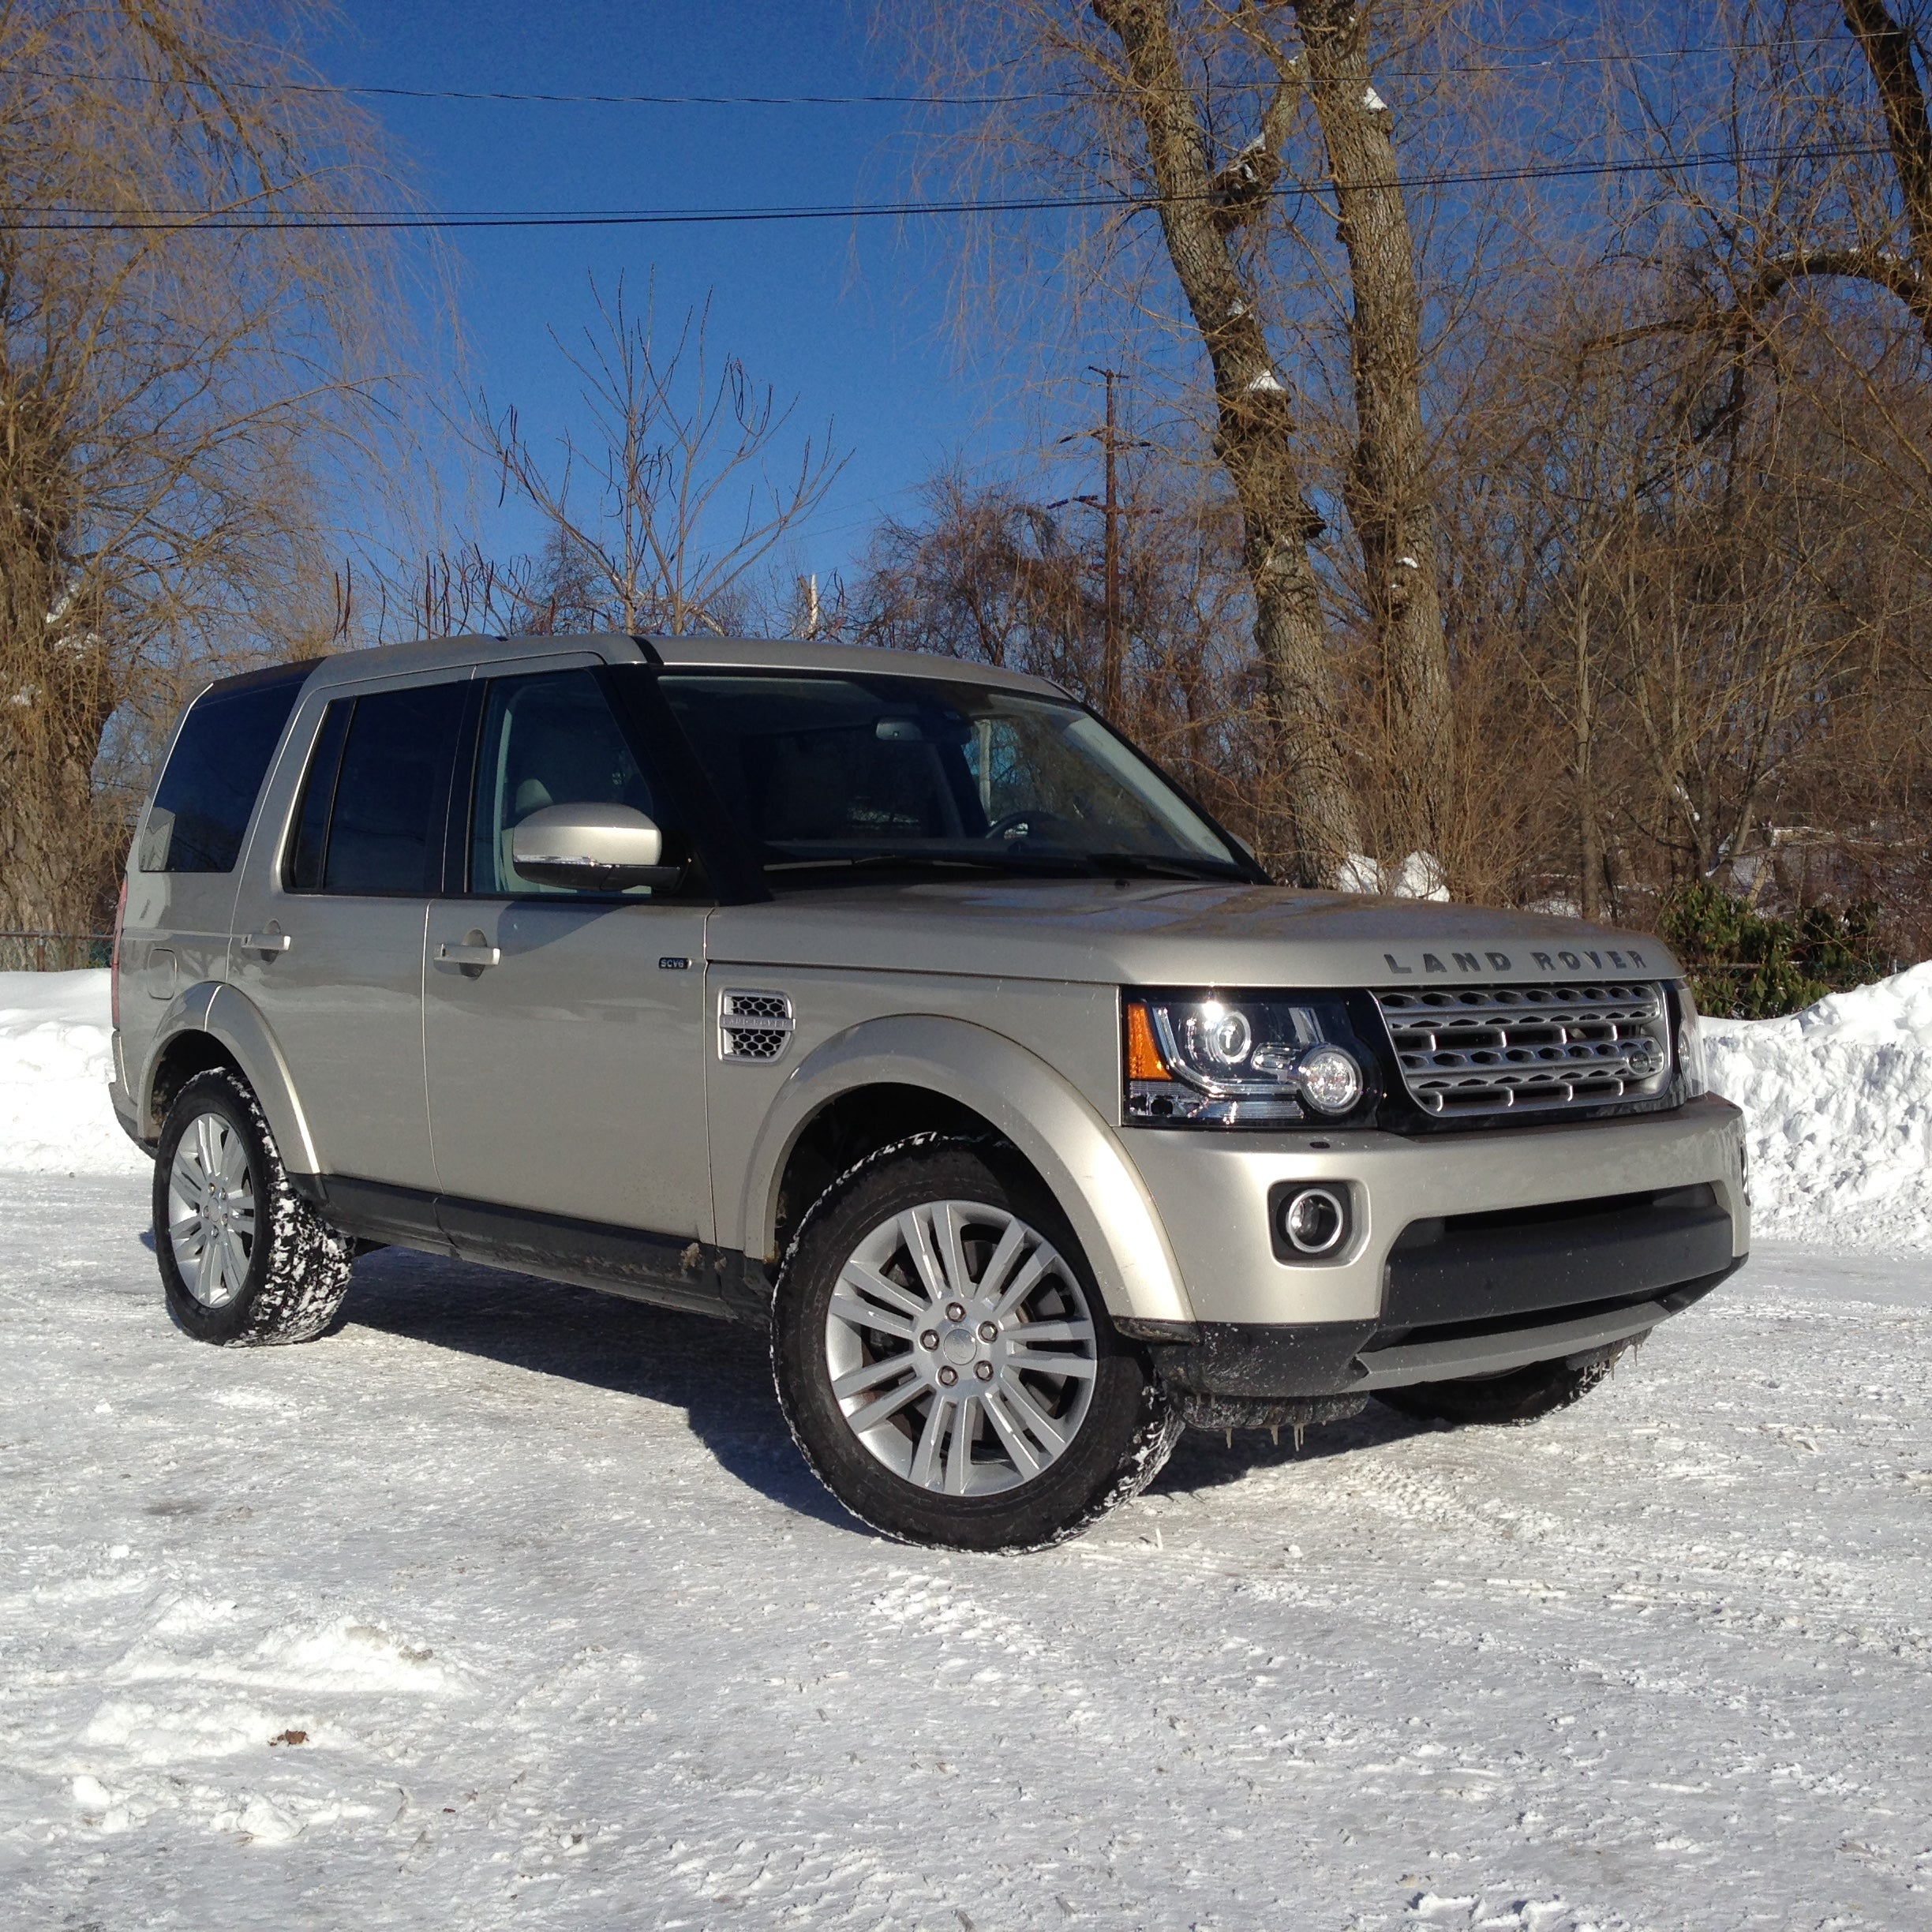 ABLE TO SEE OVER SMALL MOUNTAINS: Of snow. Who doesn't want to drive a Land Rover LR4 when in the middle of a snow apocalypse? These trusty SUVs were made to conquor the elements.